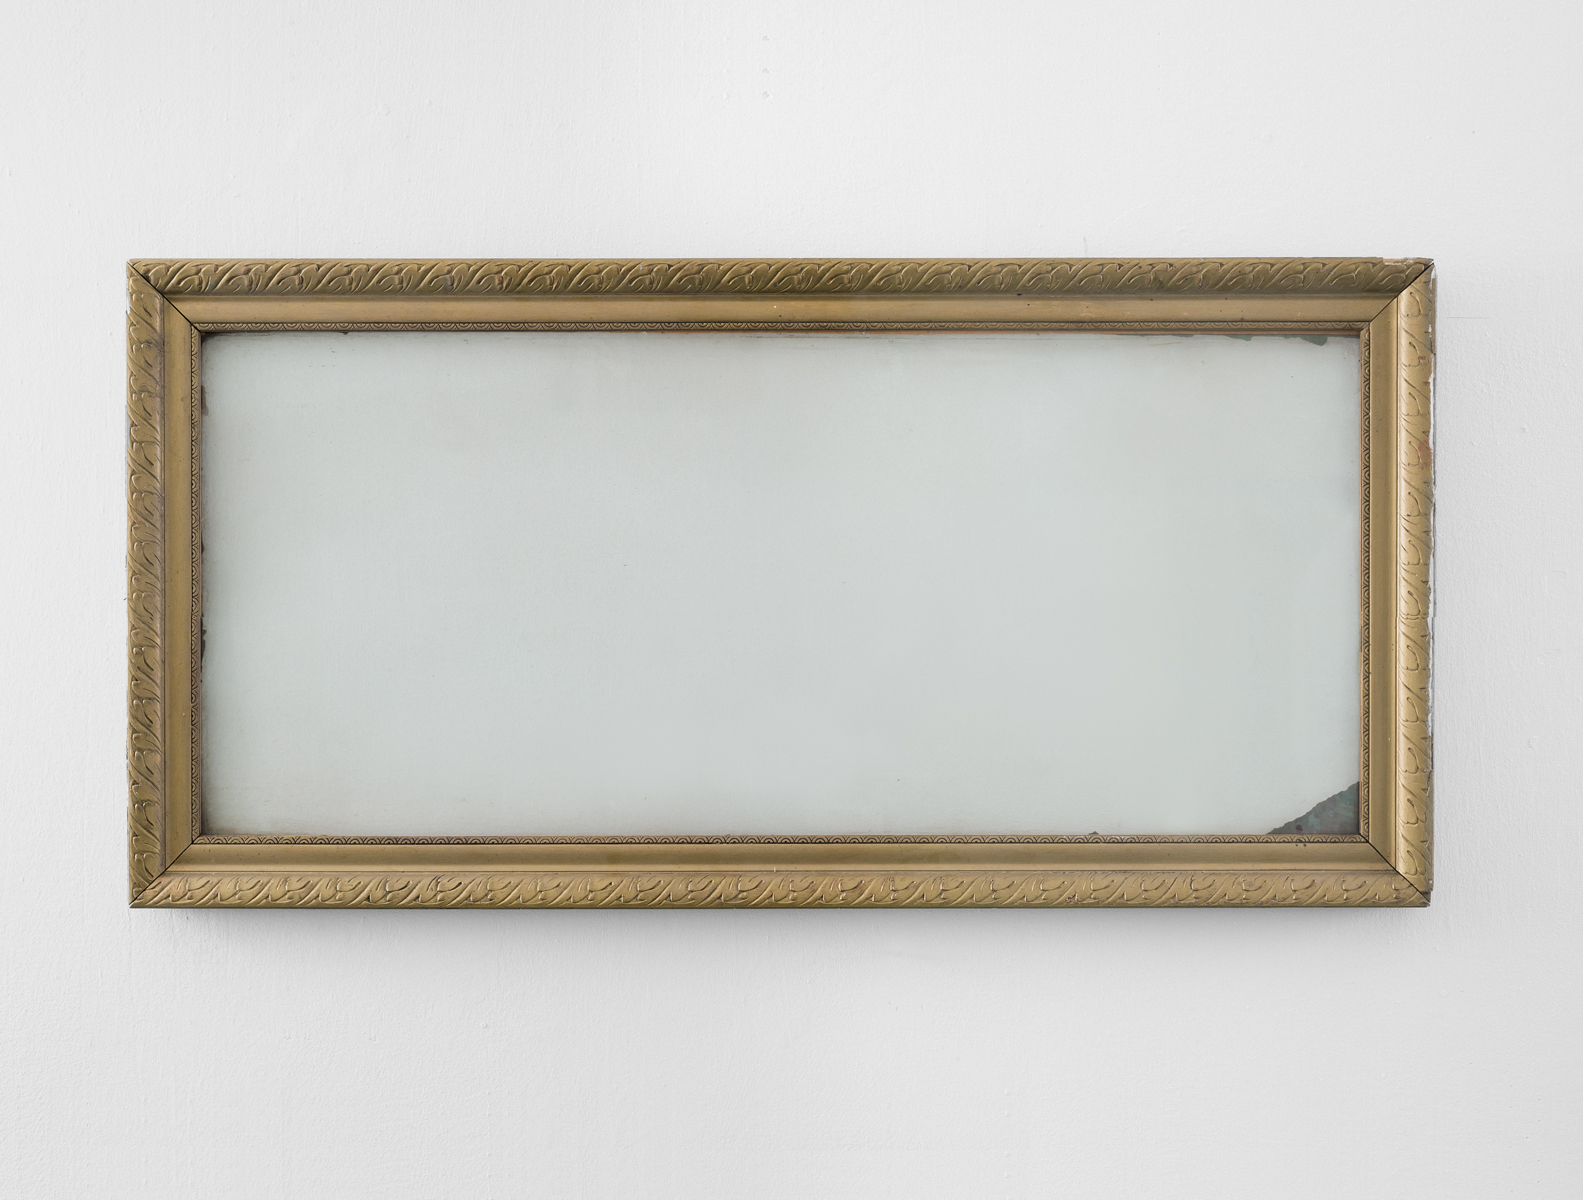 ACTUS PURUS / last supper / 2016 / 132 x 64 x 4 cm / old frames, glass